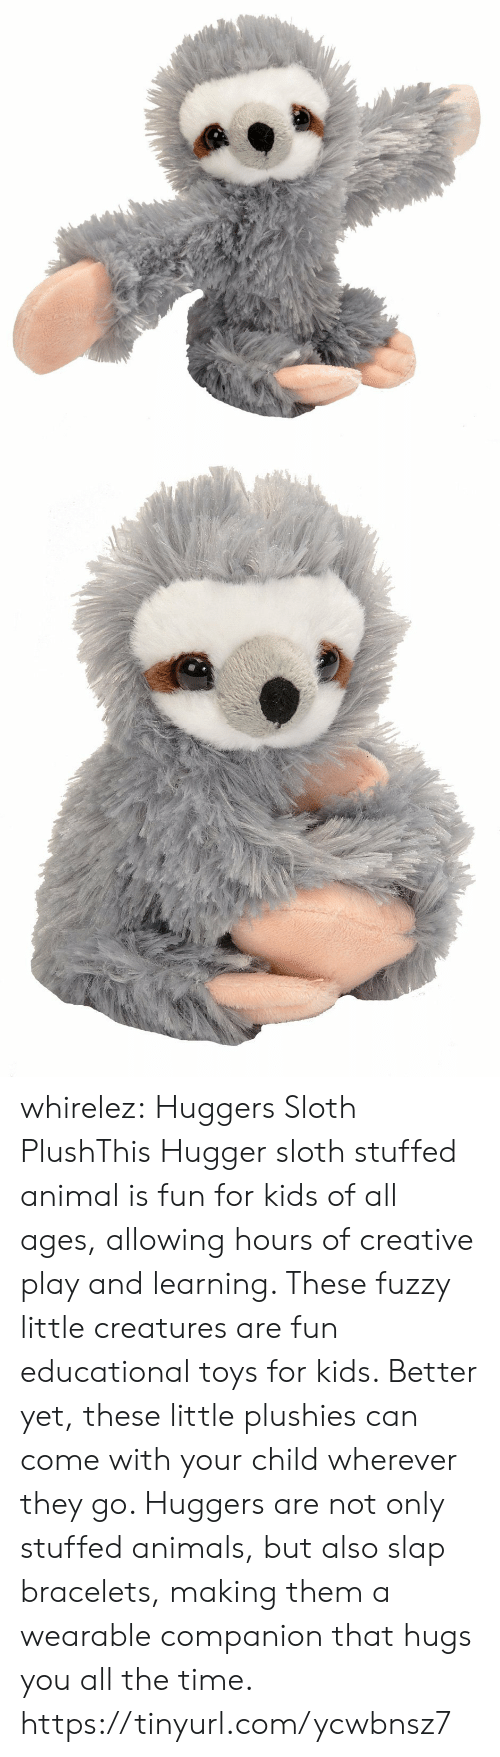 bracelets: whirelez:  Huggers Sloth PlushThis Hugger sloth stuffed animal is fun for kids of all ages, allowing hours of creative play and learning. These fuzzy little creatures are fun educational toys for kids. Better yet, these little plushies can come with your child wherever they go. Huggers are not only stuffed animals, but also slap bracelets, making them a wearable companion that hugs you all the time. https://tinyurl.com/ycwbnsz7